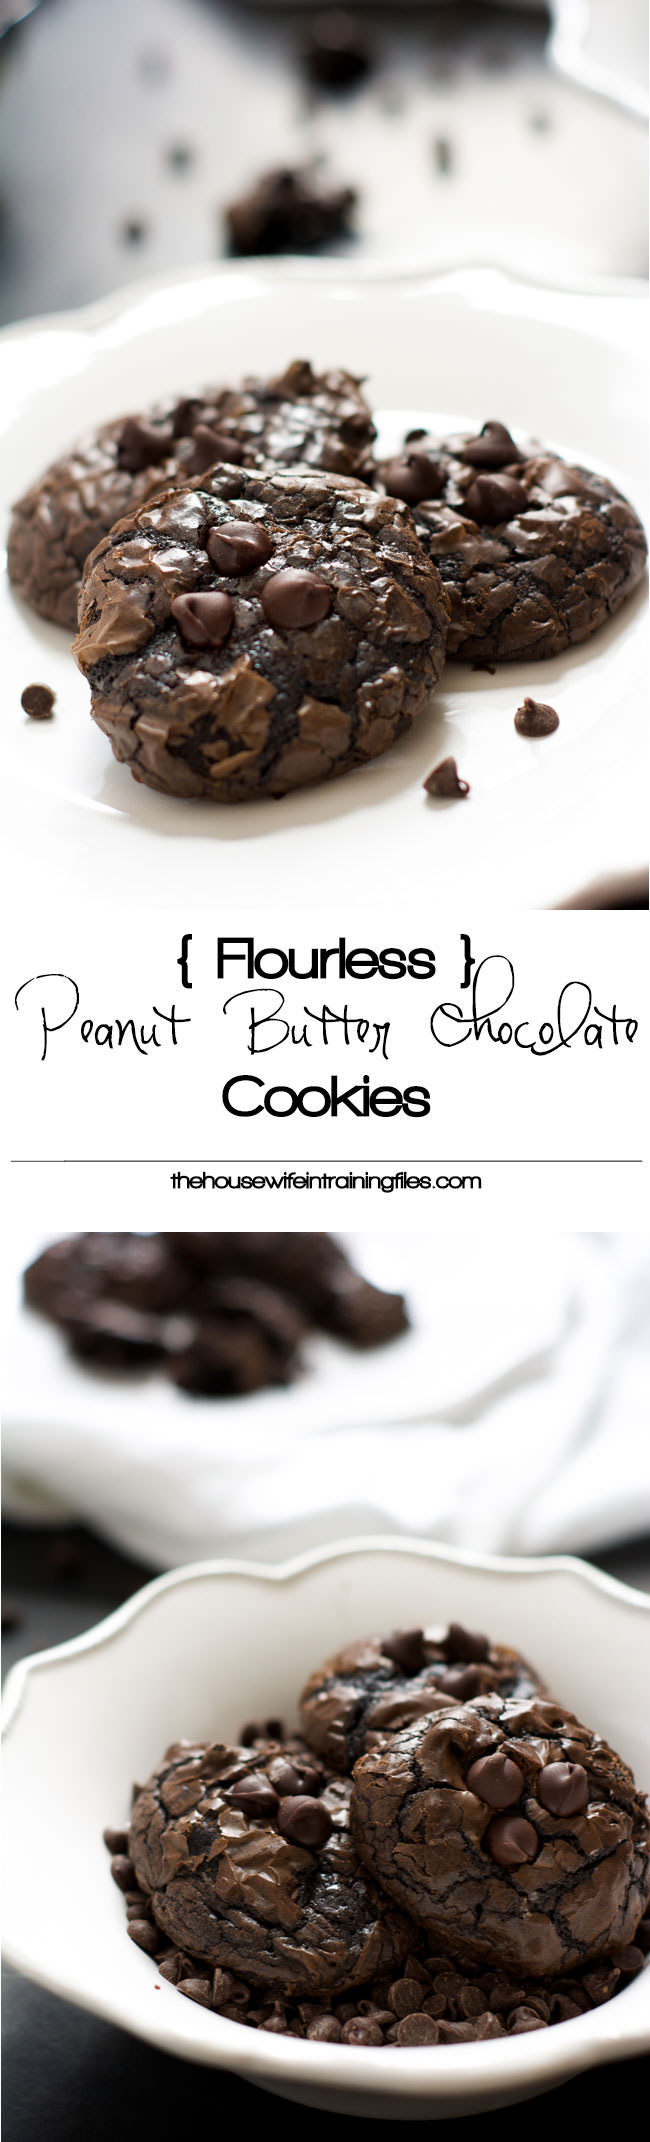 Rich and decadent Flourless Peanut Butter Chocolate Cookies are naturally gluten free and filled with two types of chocolate and creamy peanut butter!